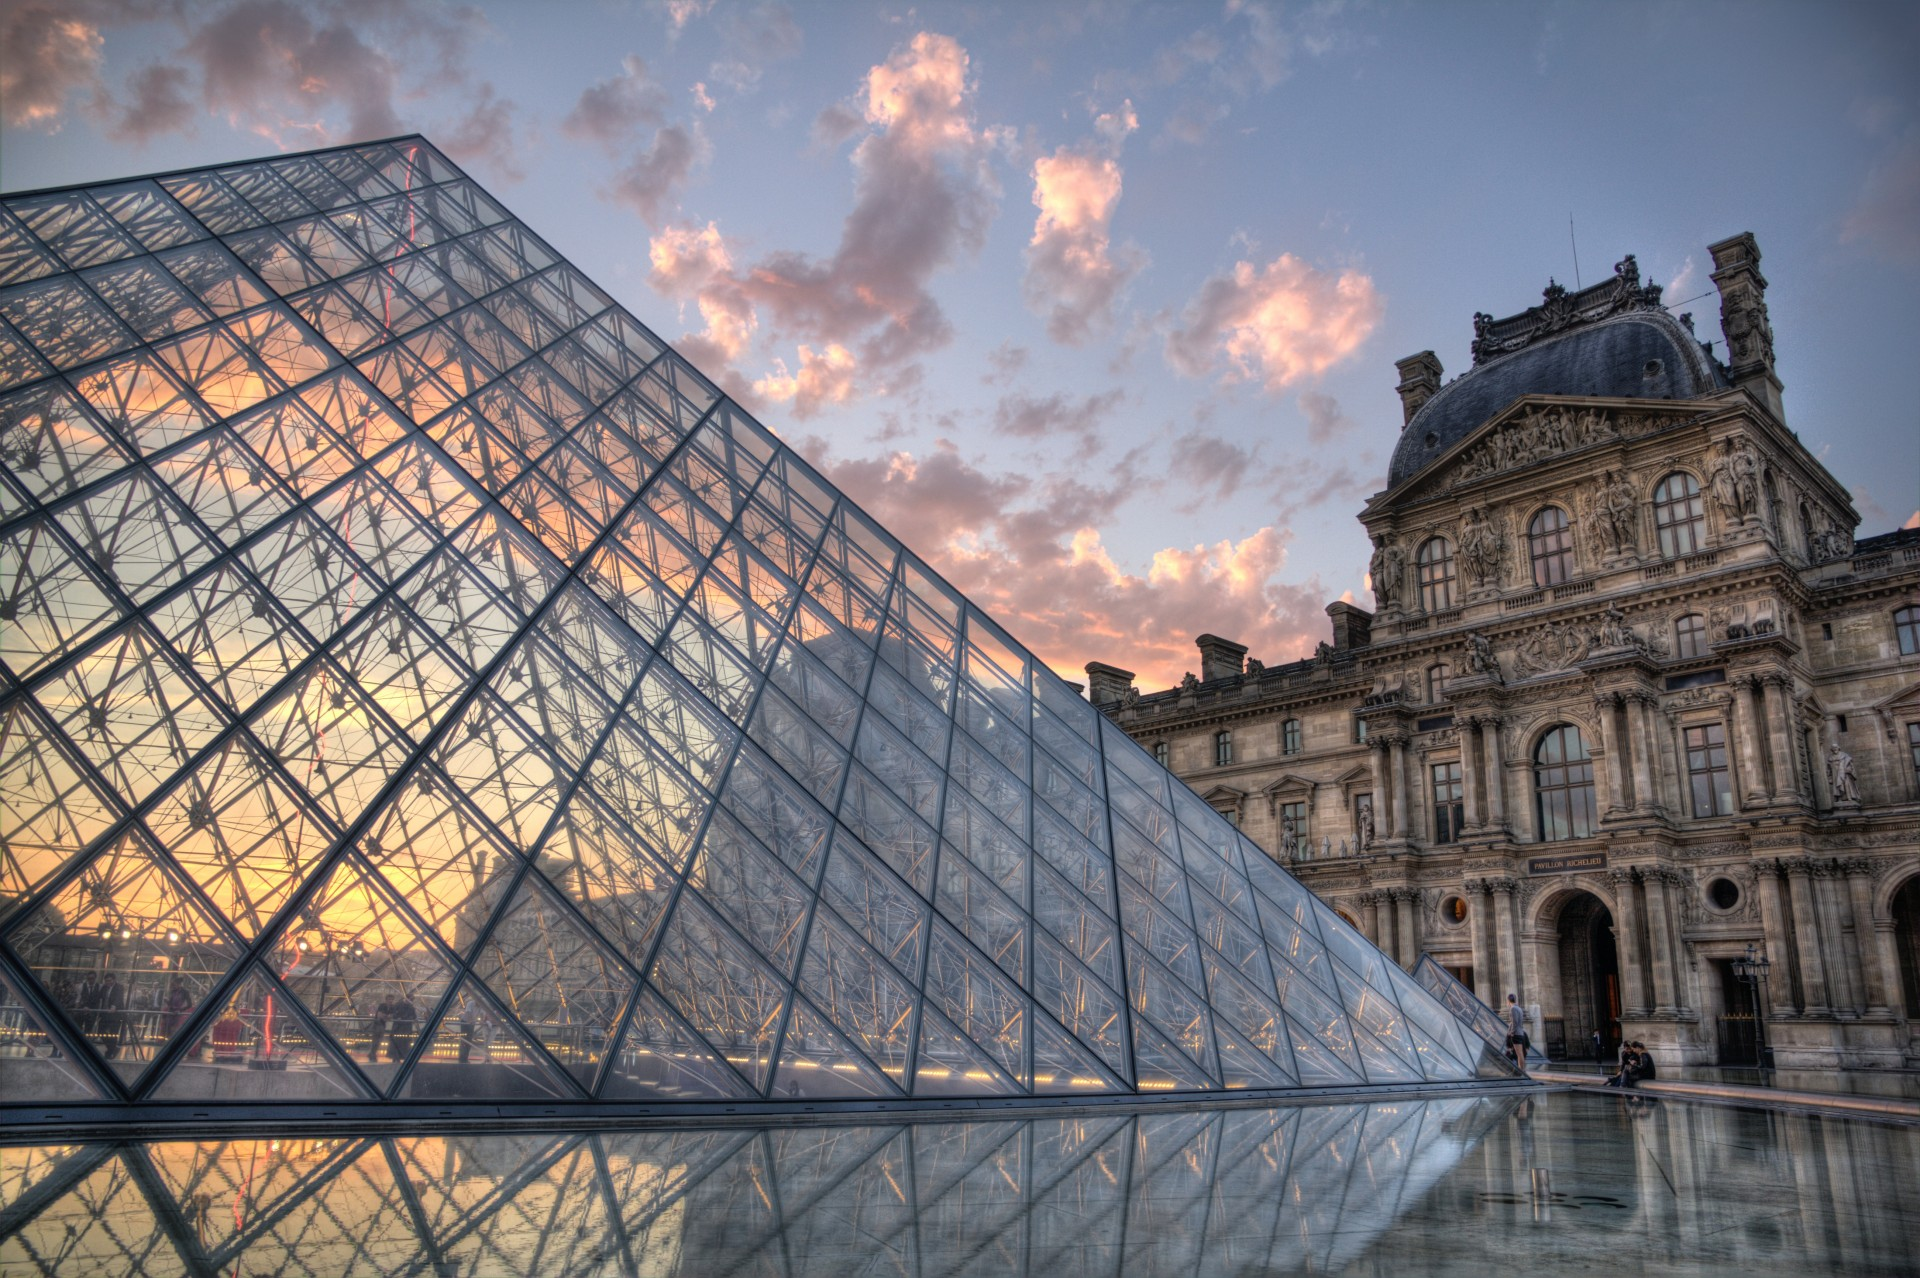 The Louvre, Paris was closed for nearly half of 2020